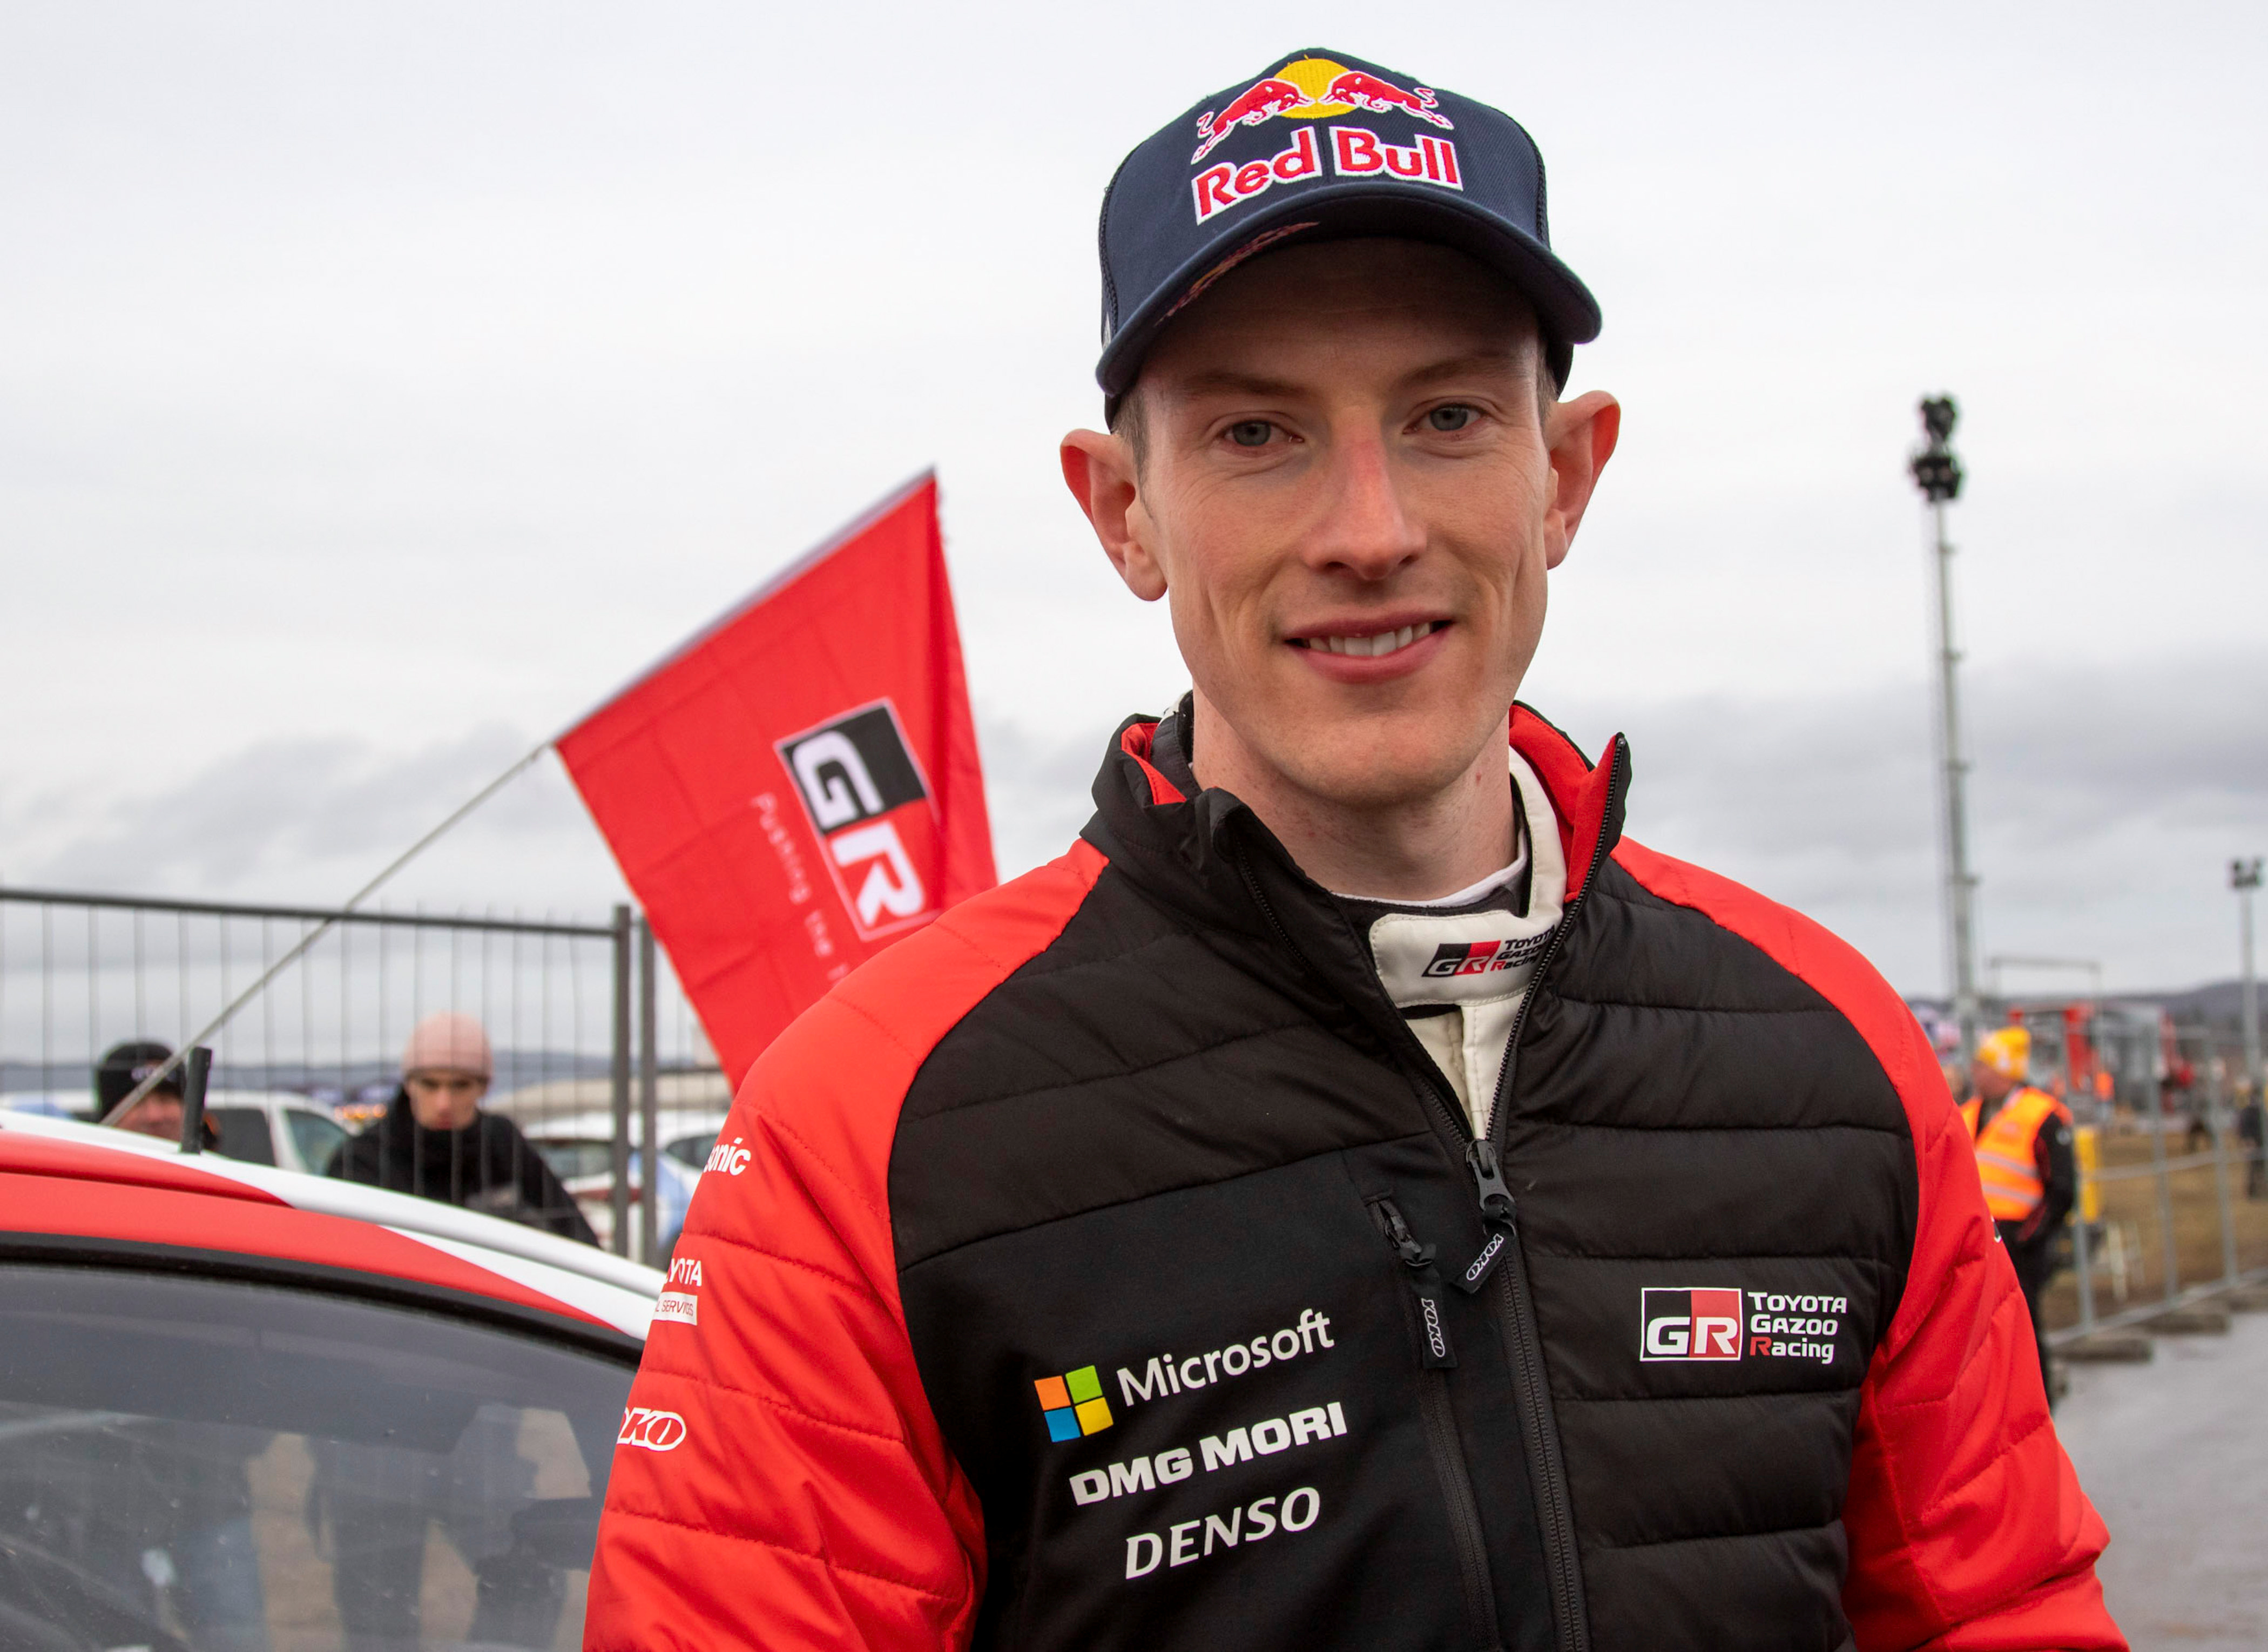 FIA World Rally Championship - Rally Sweden - Second Round - Torsby, Sweden - February 16, 2020. Elfyn Evans of Britain poses. Micke Fransson/TT News Agency/via REUTERS